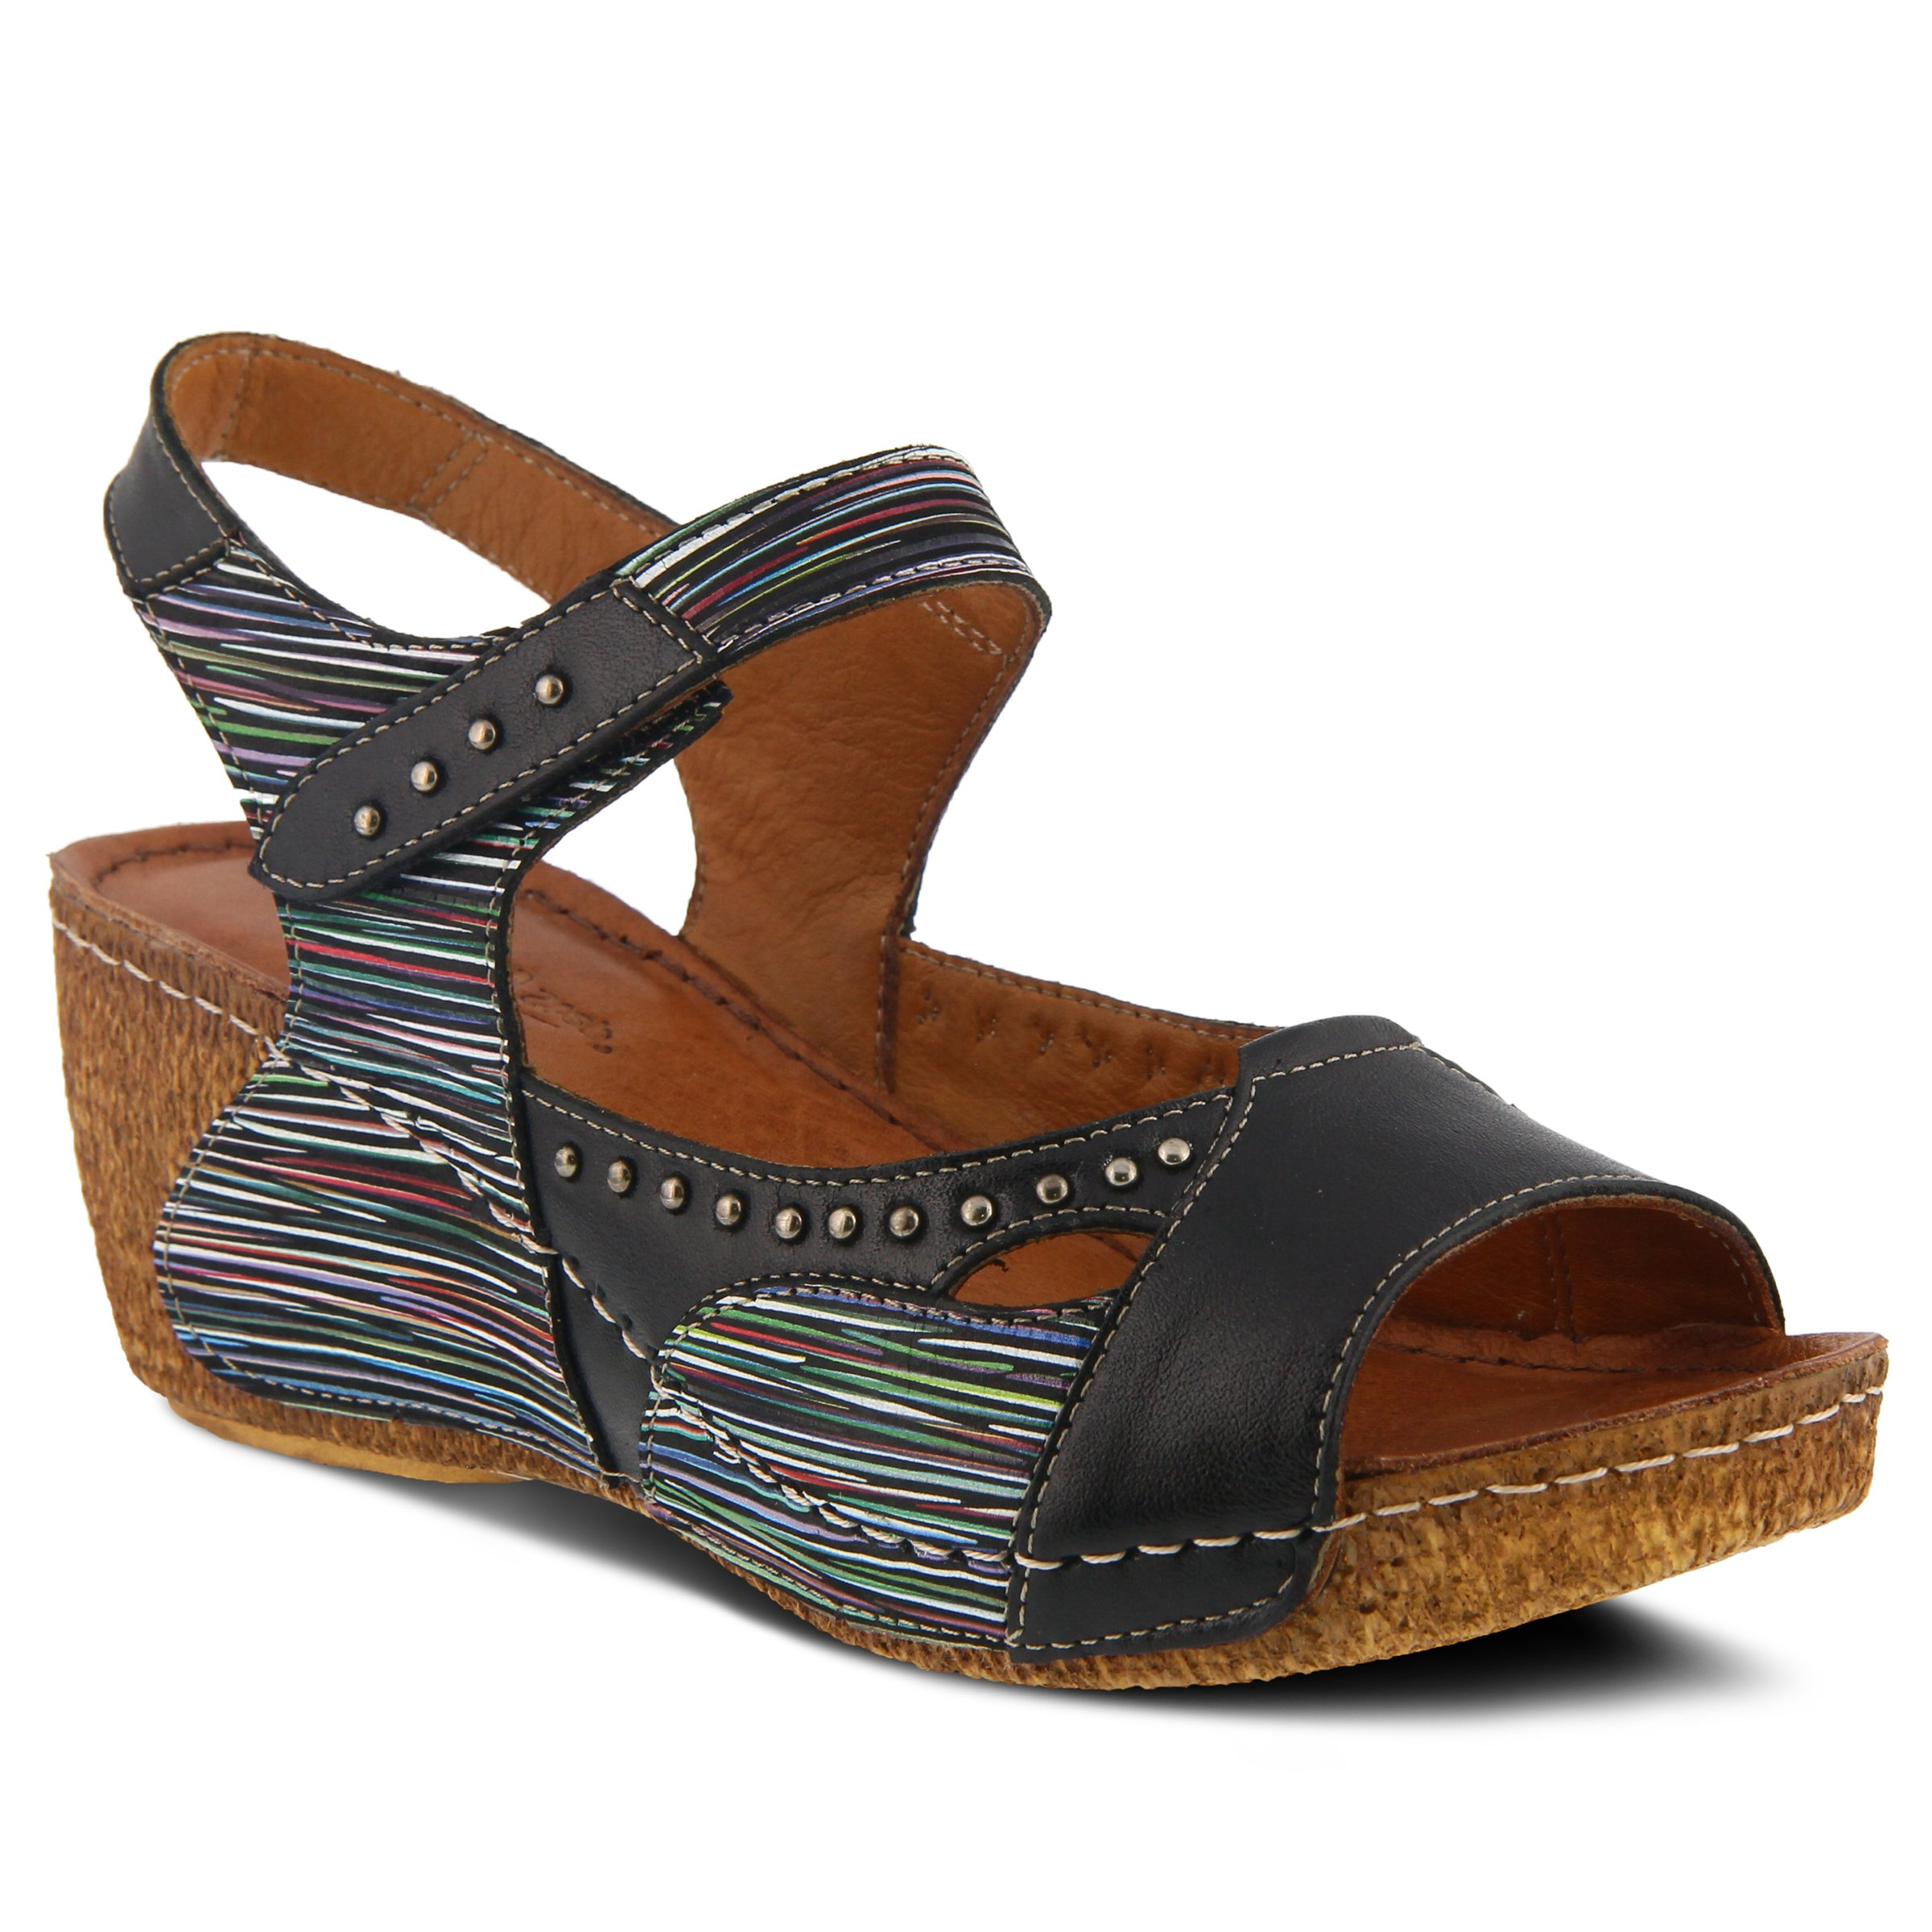 Spring Step Women's Style Jaslyn Black Multi EURO Size 39 Leather Slide Sandal by Spring Step